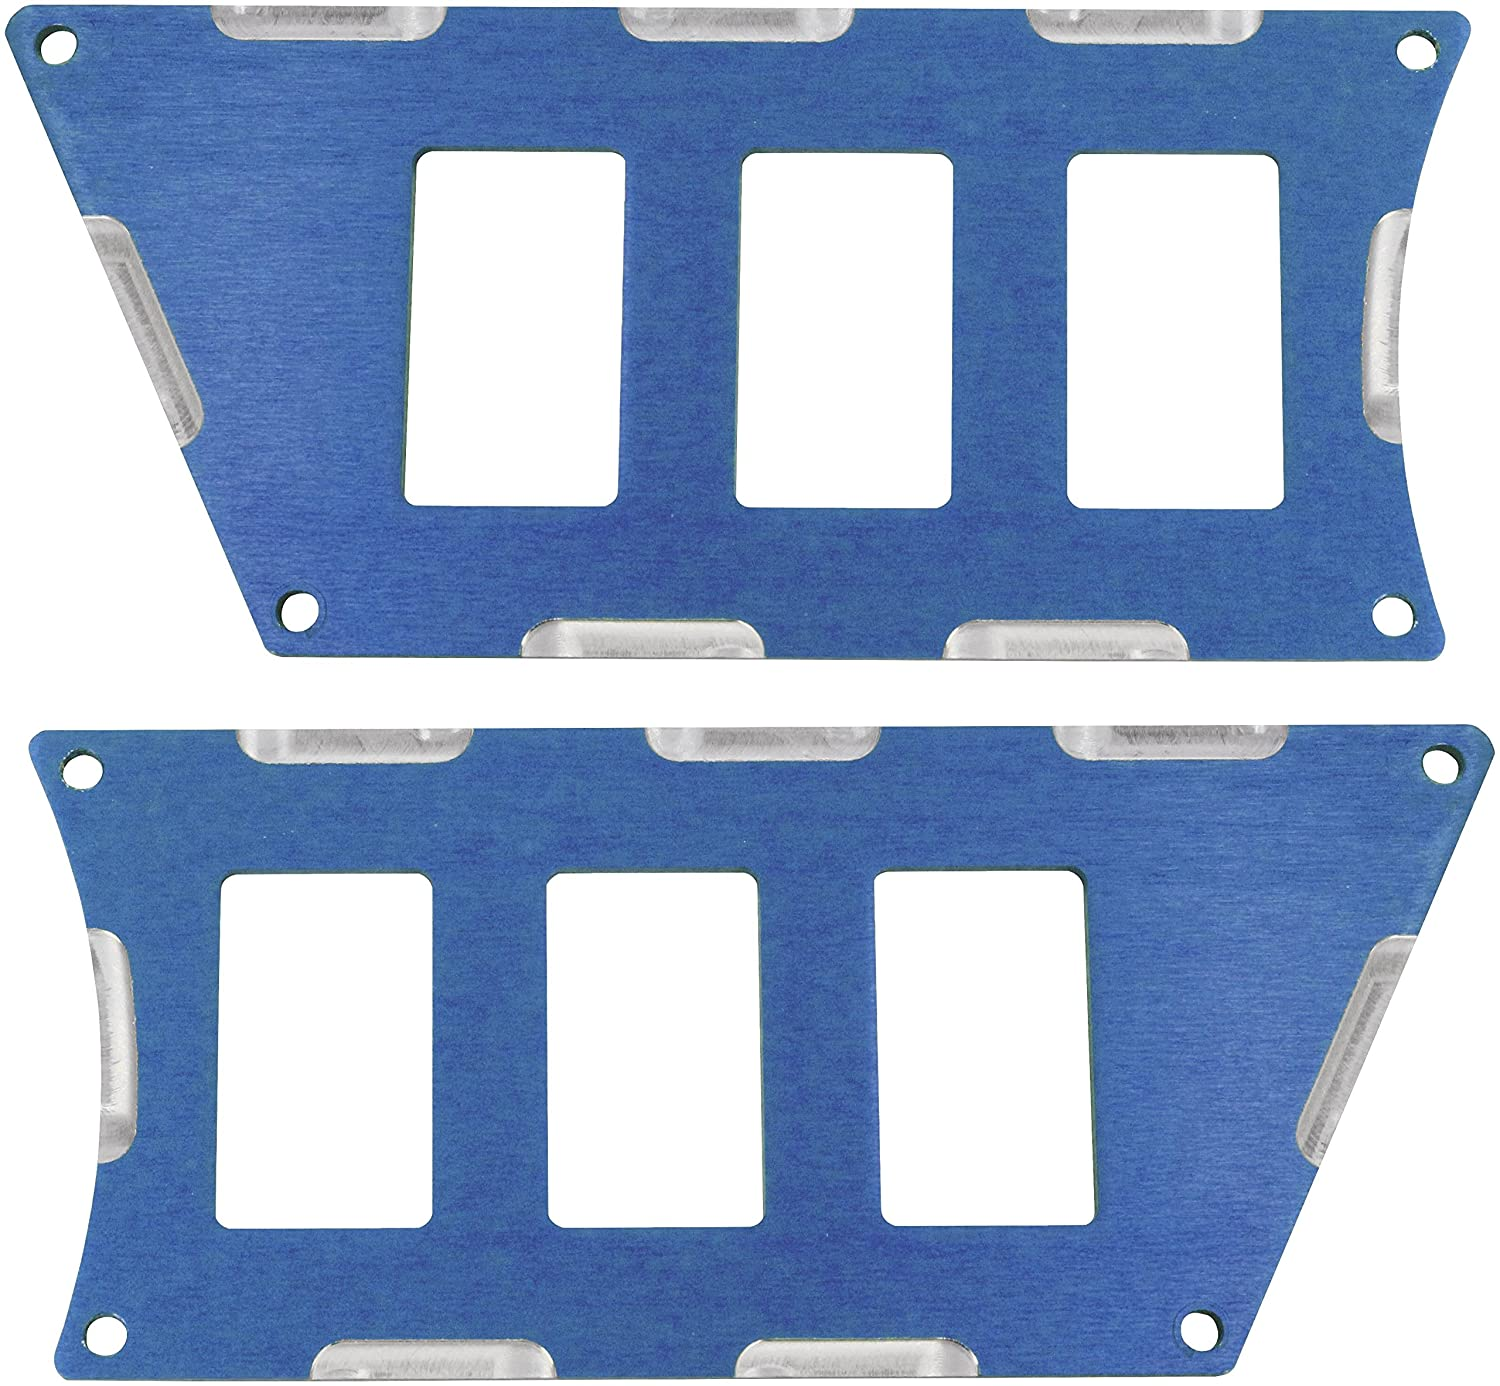 Modquad Blue Rocker Switch Panels for 6 Switches Polaris RZR XP 1000 / Turbo TRTC2399